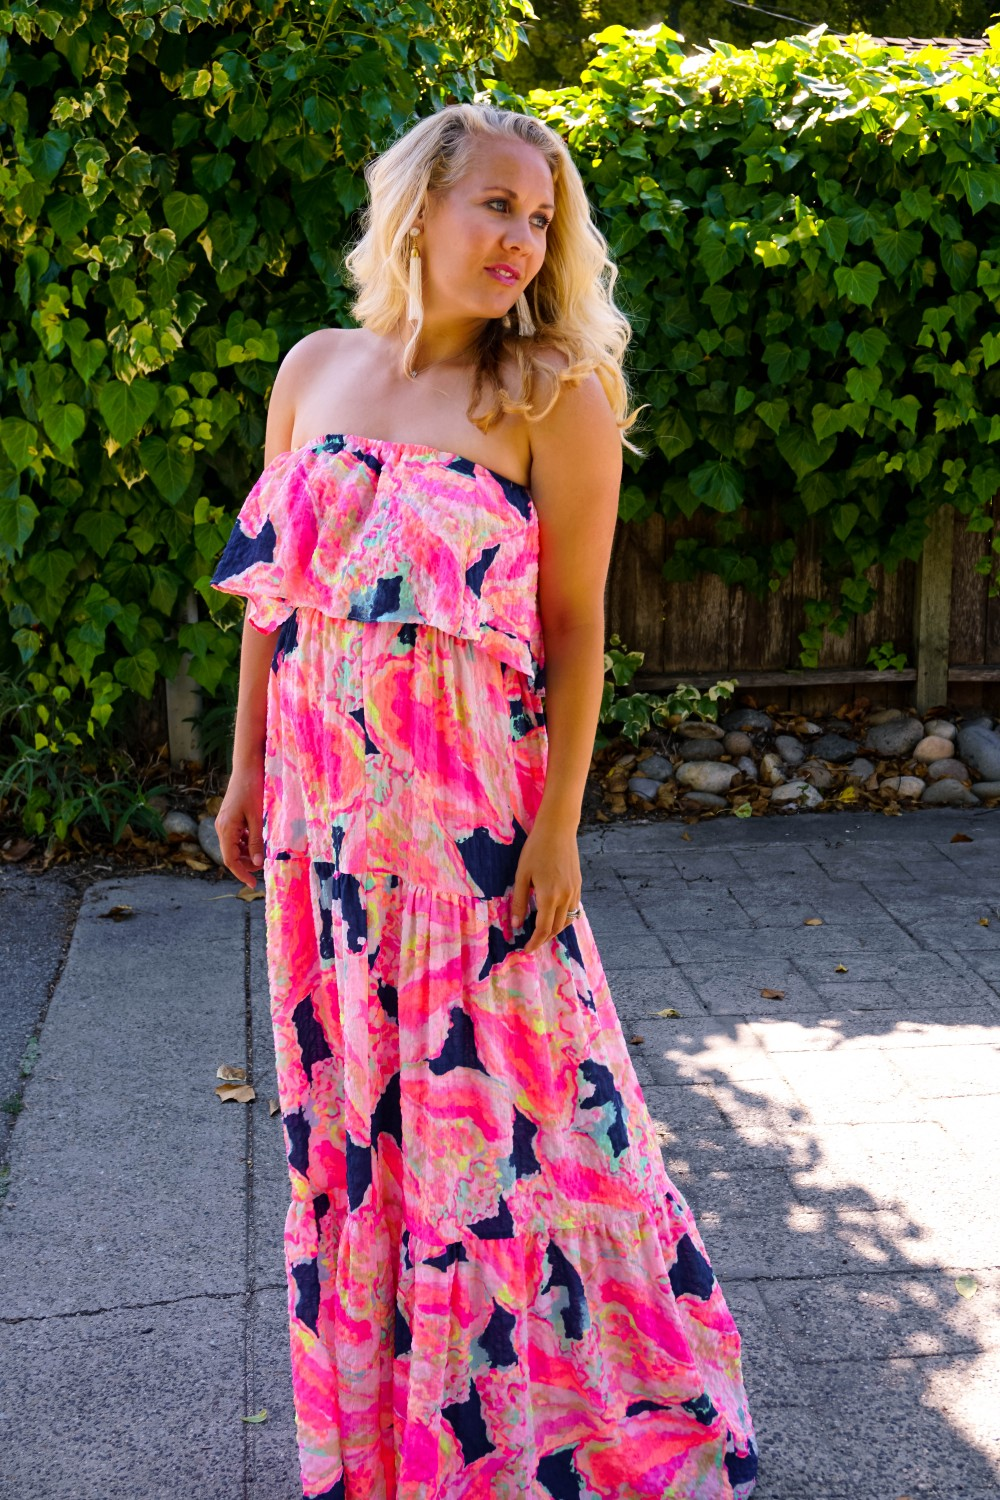 Lilly Pulitzer-Resort 365-Outfit Inspiration-Summer Style-Summer Maxi Dress-Summer 2017 Trends-Have Need Want 14